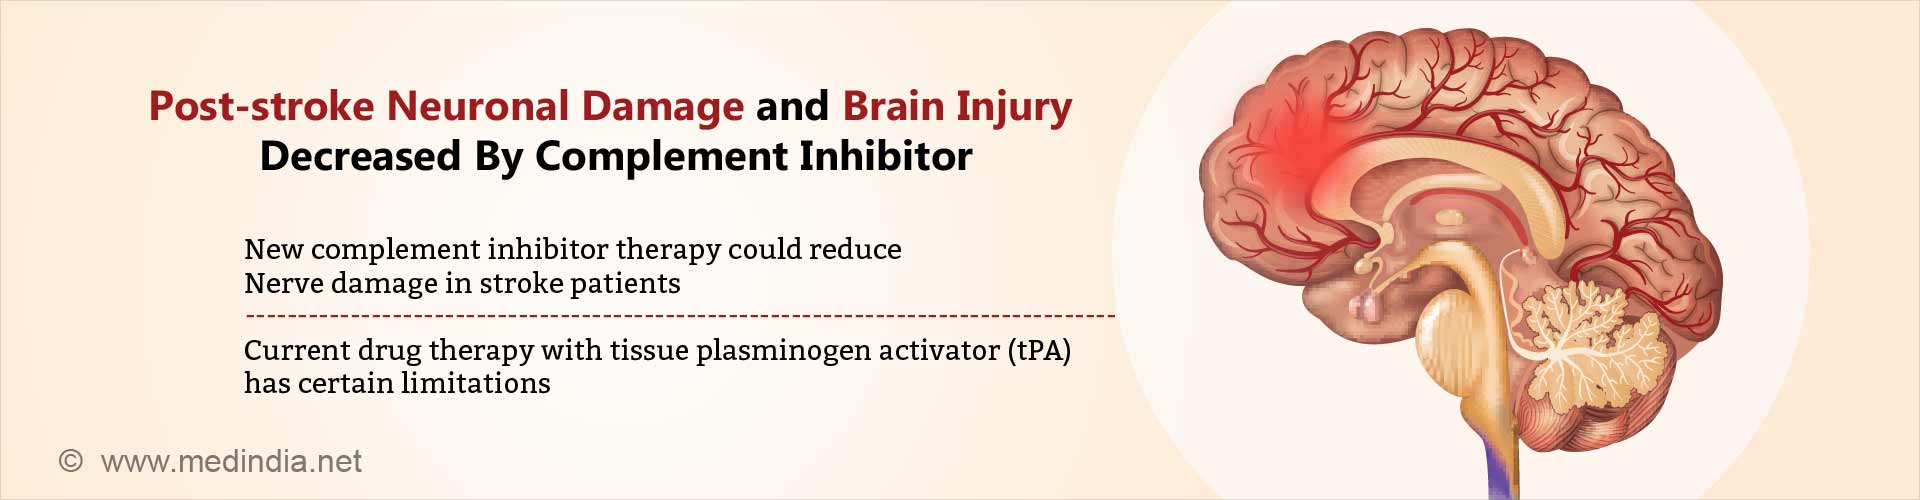 post-stroke neuronal damage and brain injury decreased by complement inhibitor